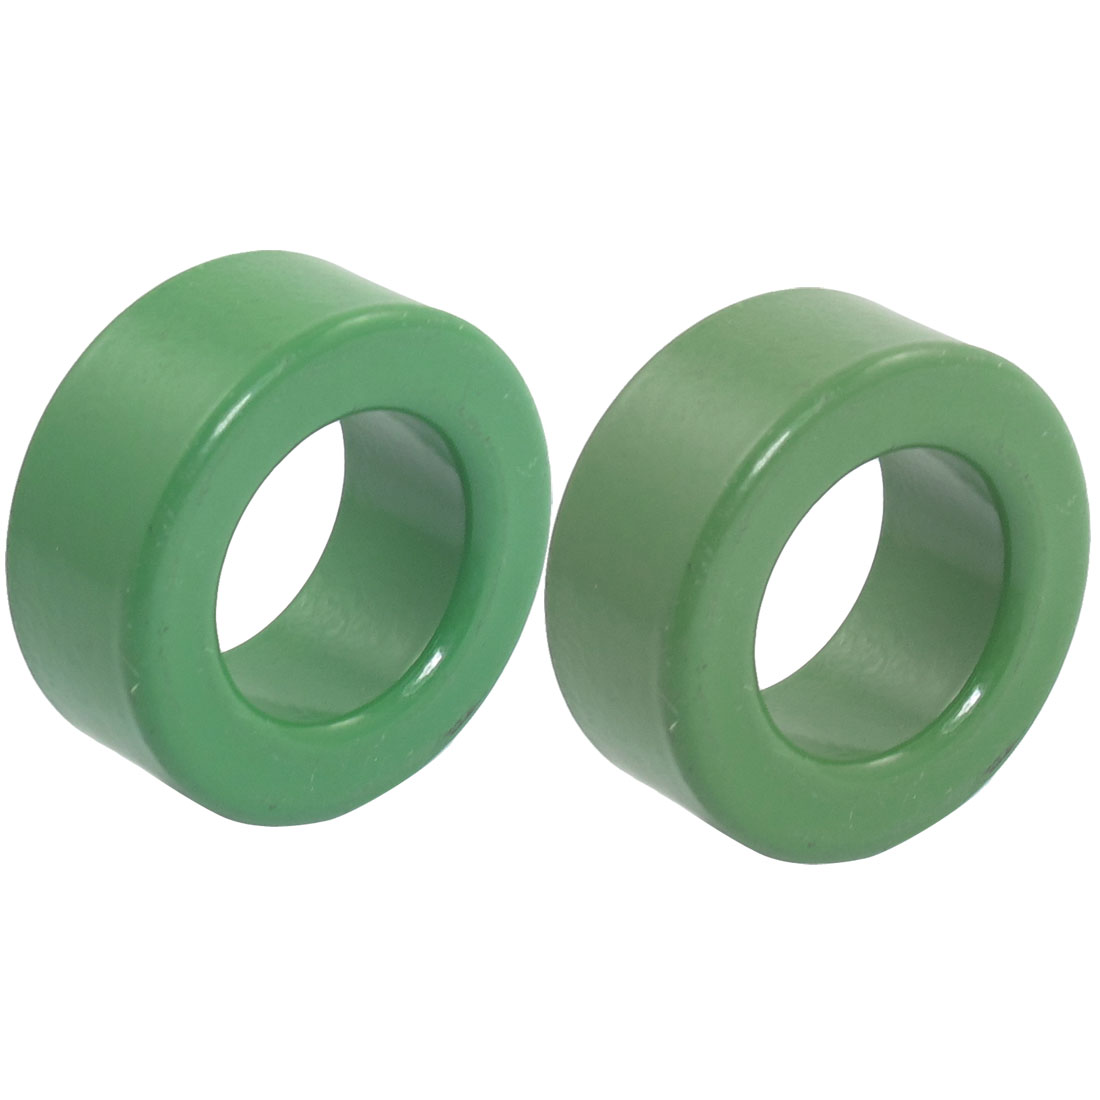 UXCELL Hot Sale 2 Pcs 31 x 19 x 13mm Green Iron Toroid Ferrite Core Used Widely in Power Transformers Welding Transformers transformers ferrite toroid cores green 74mm x 39mm x 13mm